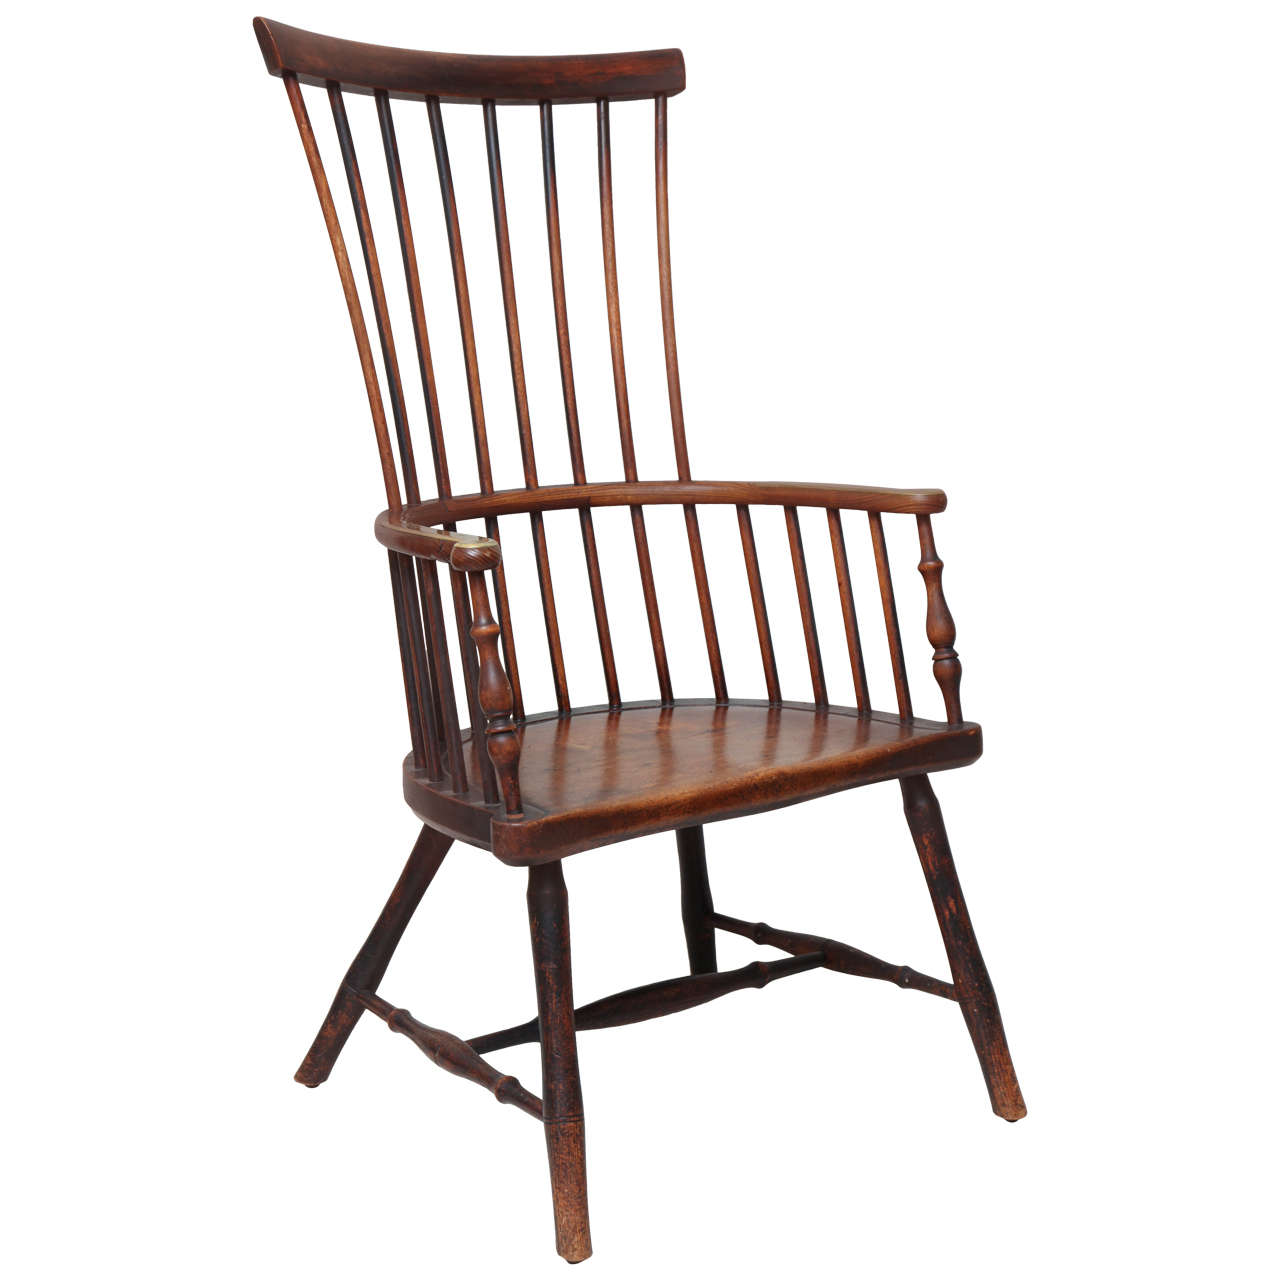 Exceptionnel Early 19th Century Scottish Comb Back Windsor Armchair For Sale